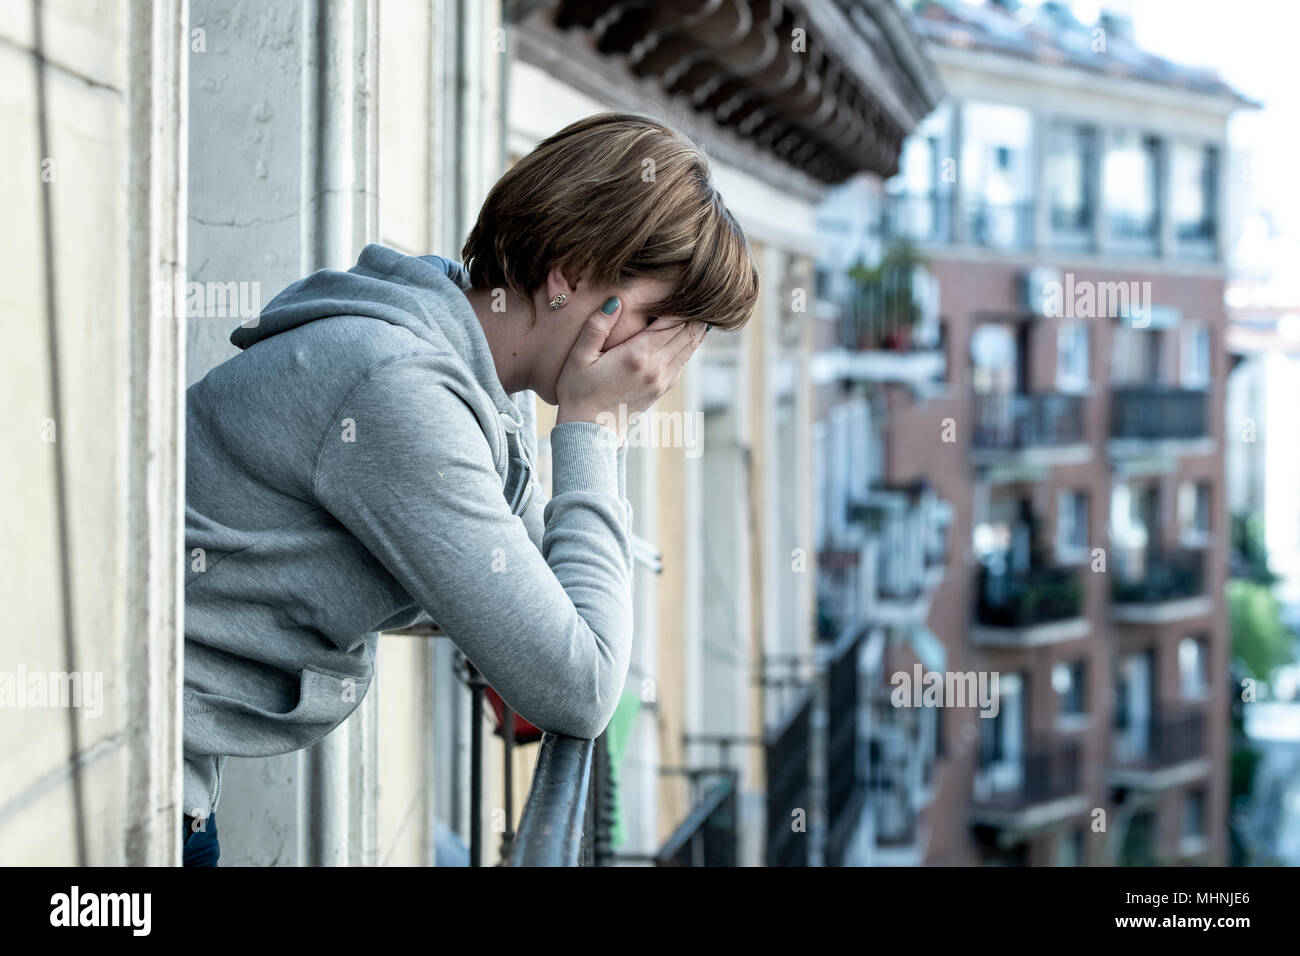 young attractive unhappy suicidal caucasian woman suffering from depression feeling desperate, isolated, worthless on home balcony. Hand on her face w - Stock Image